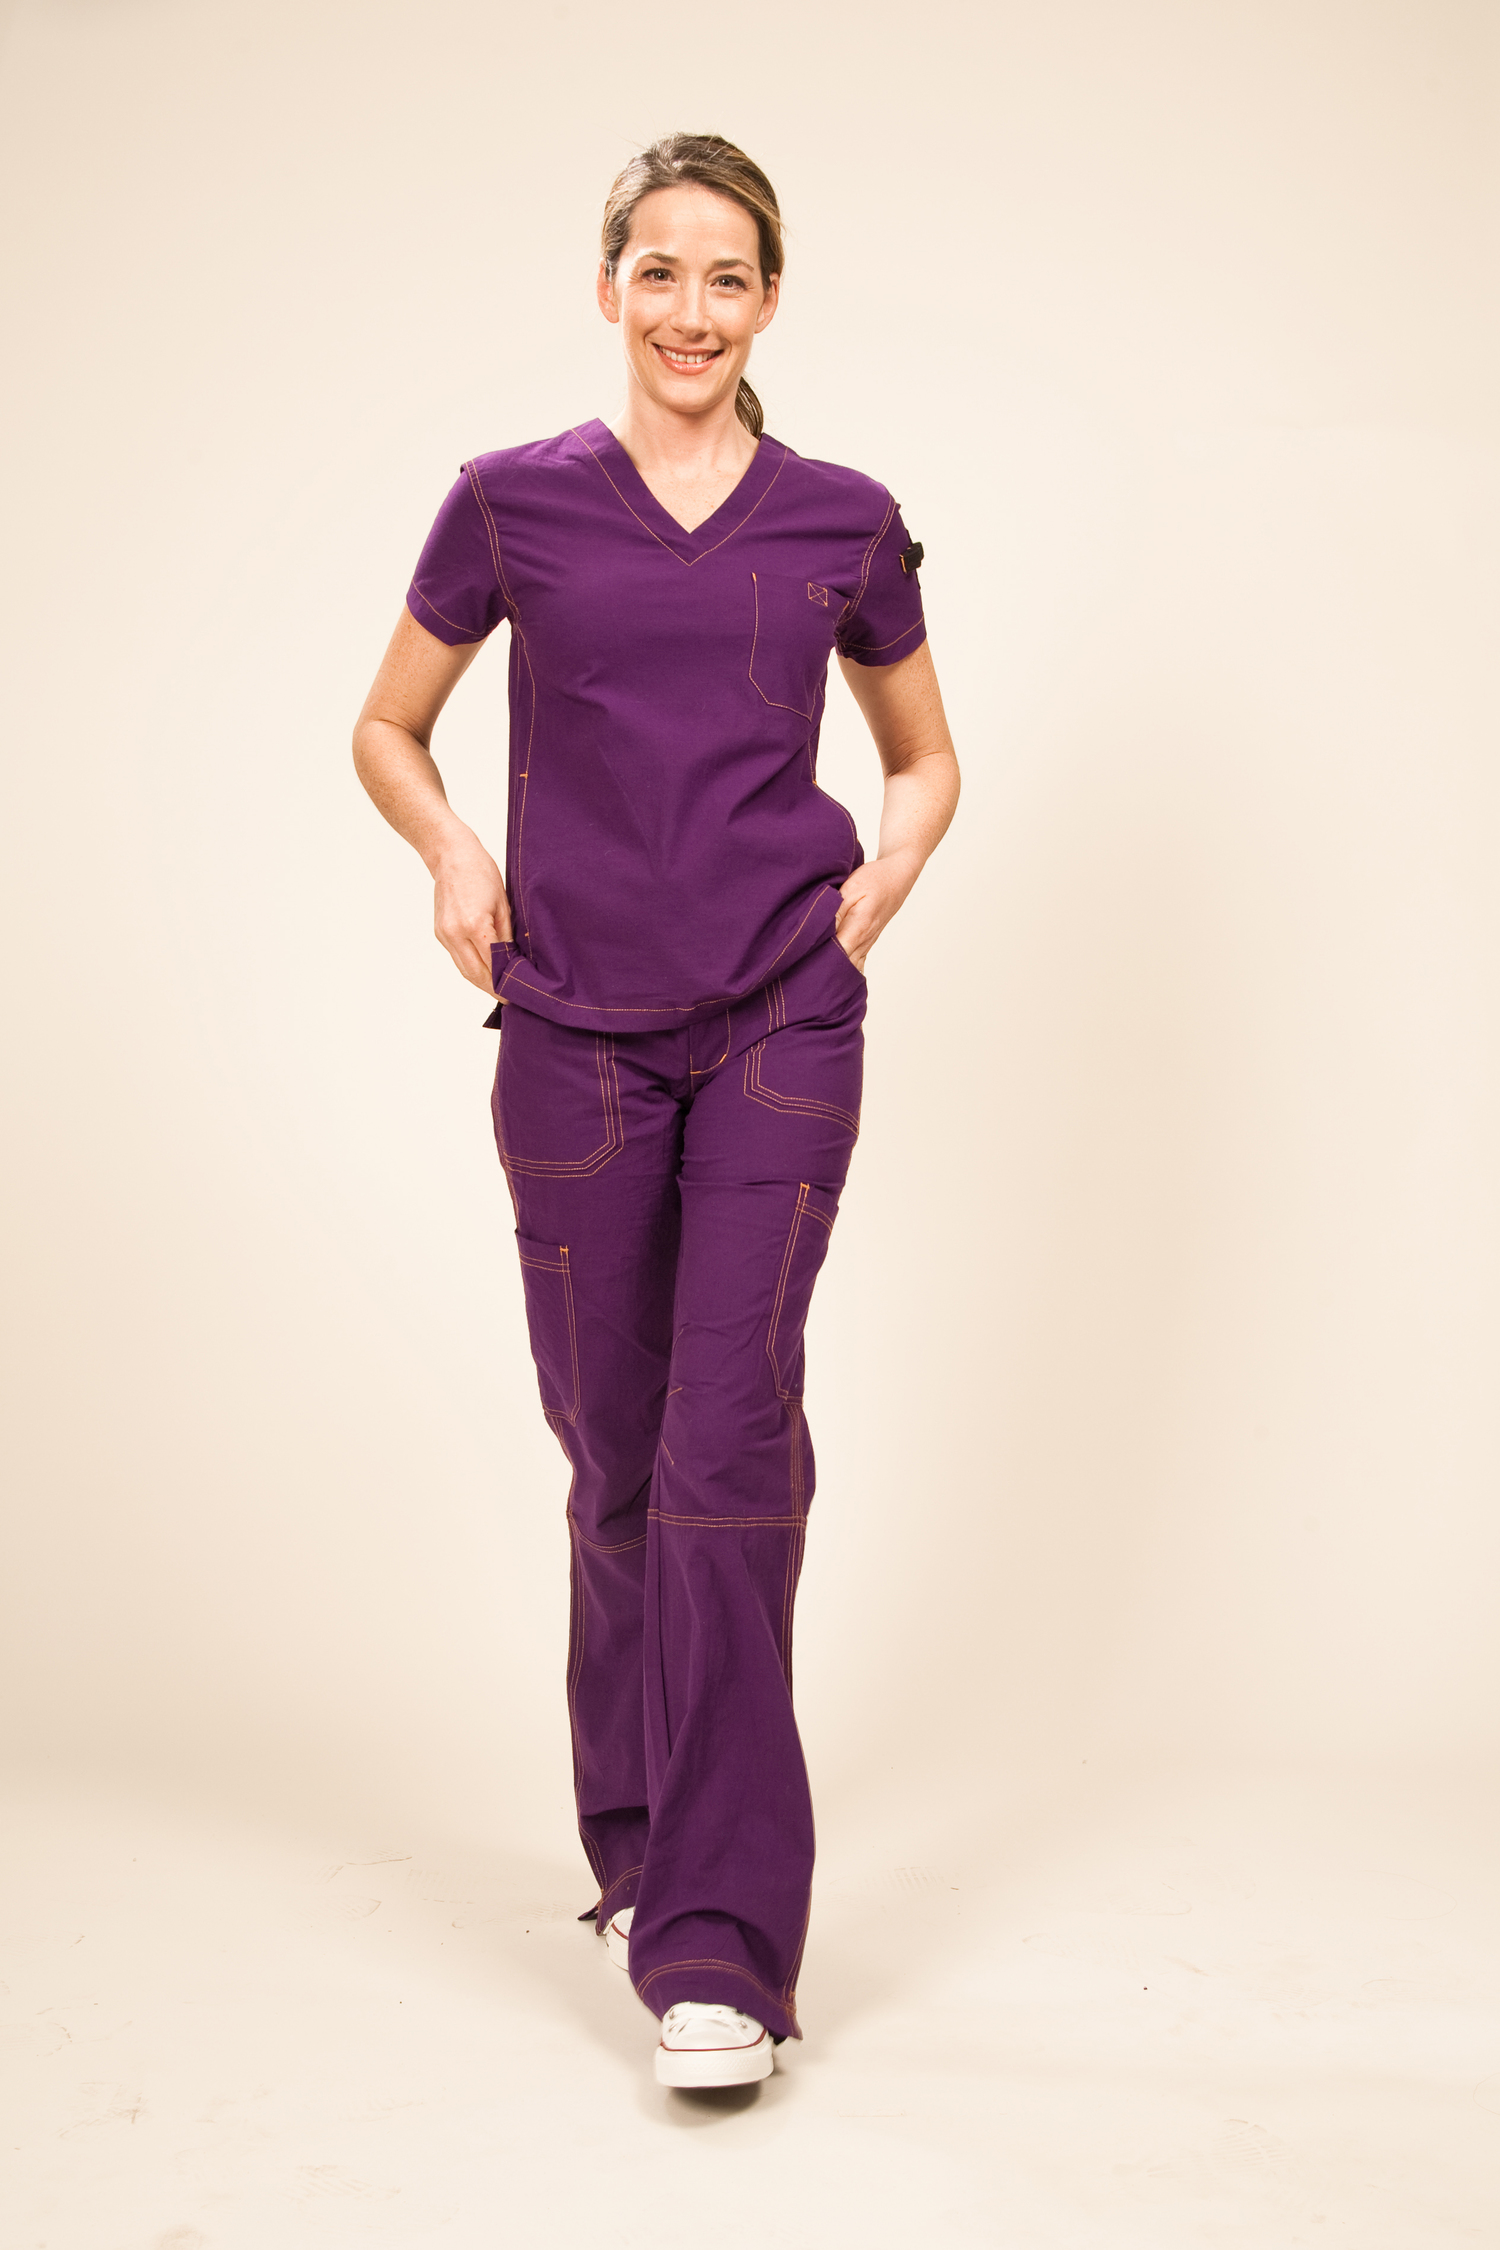 c5c04fd55e6 Created in 2010 by Natalie Schonfeld, Bella Organics Medical started as a  need for better looking medical scrubs. Not only did she want to add more  ...